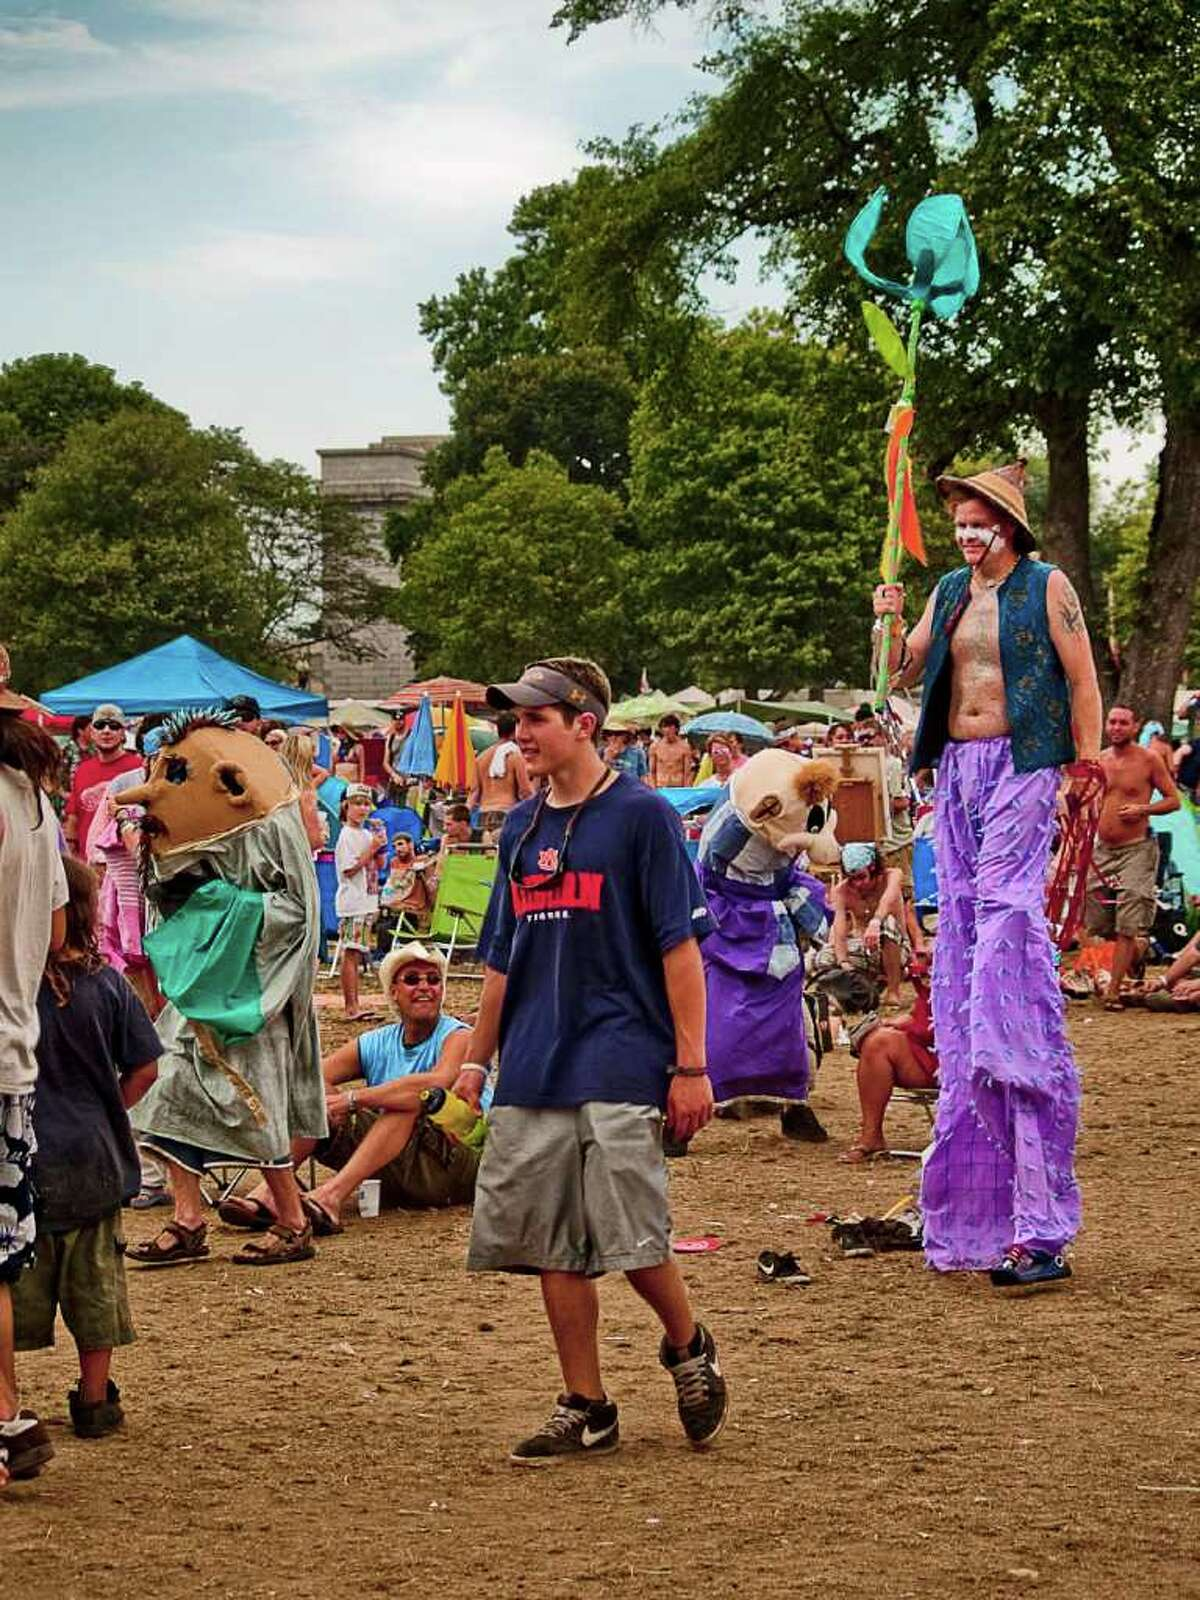 Day three of the Gathering of the Vibes wasn't as hot as day two and the attendees took full advantage of the slightly cooler temperature.